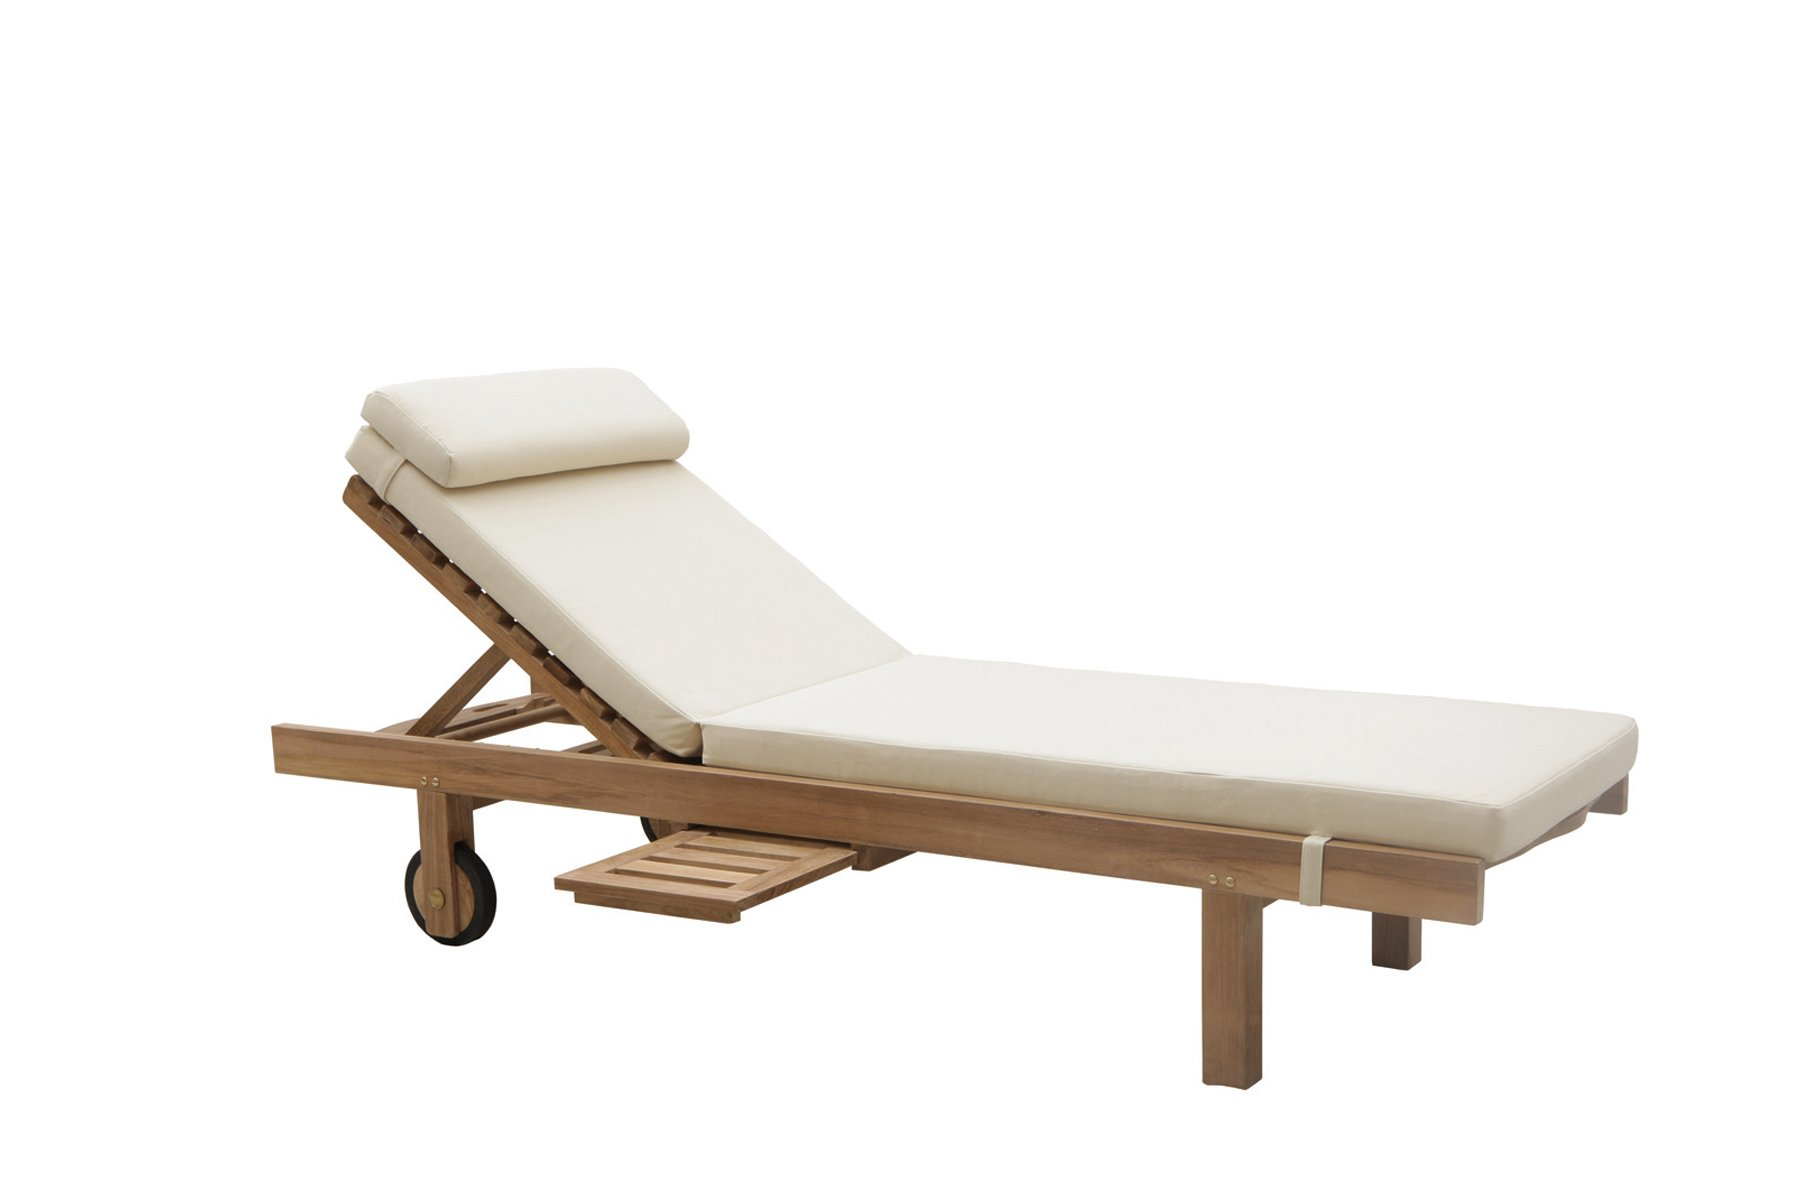 Los Il Giardino With Tray Sunlounger Roques And Wheels Classica DH9EIW2